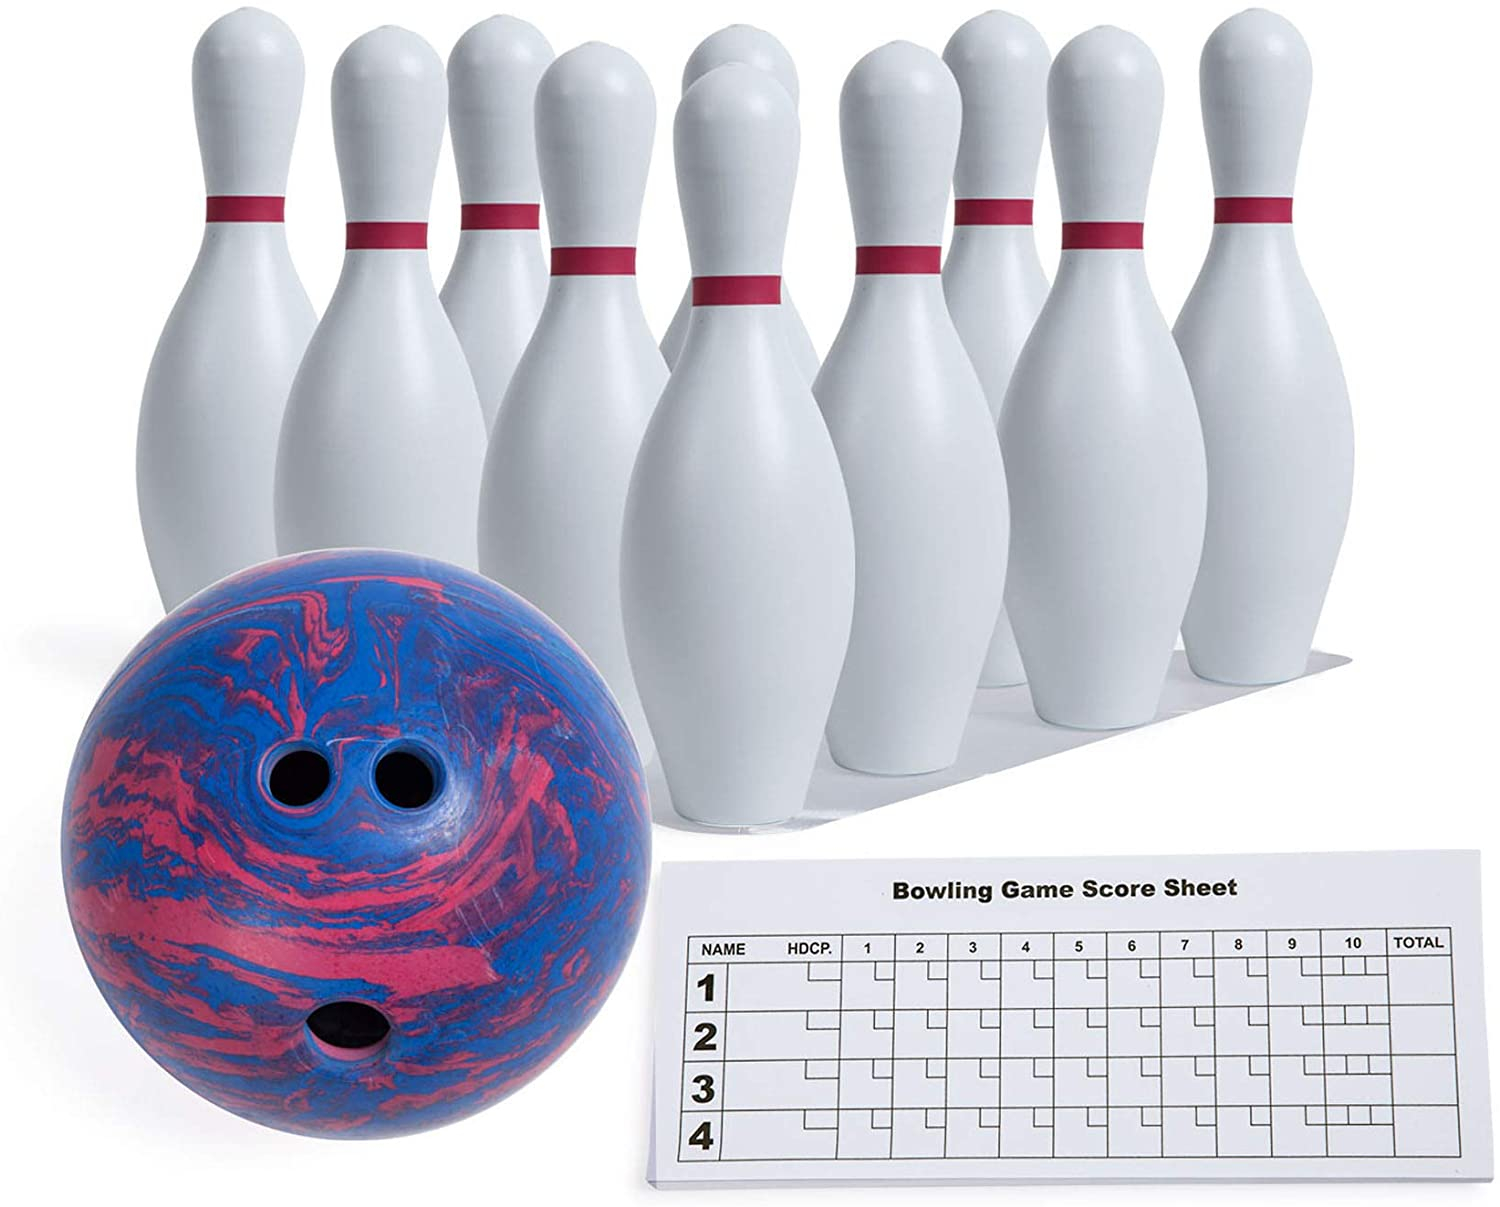 Amazon Com Champion Sports Bowling Set Rubber Ball Plastic Pins For Training Kids Games Model Bpset Bowling Equipment Sets Sports Outdoors